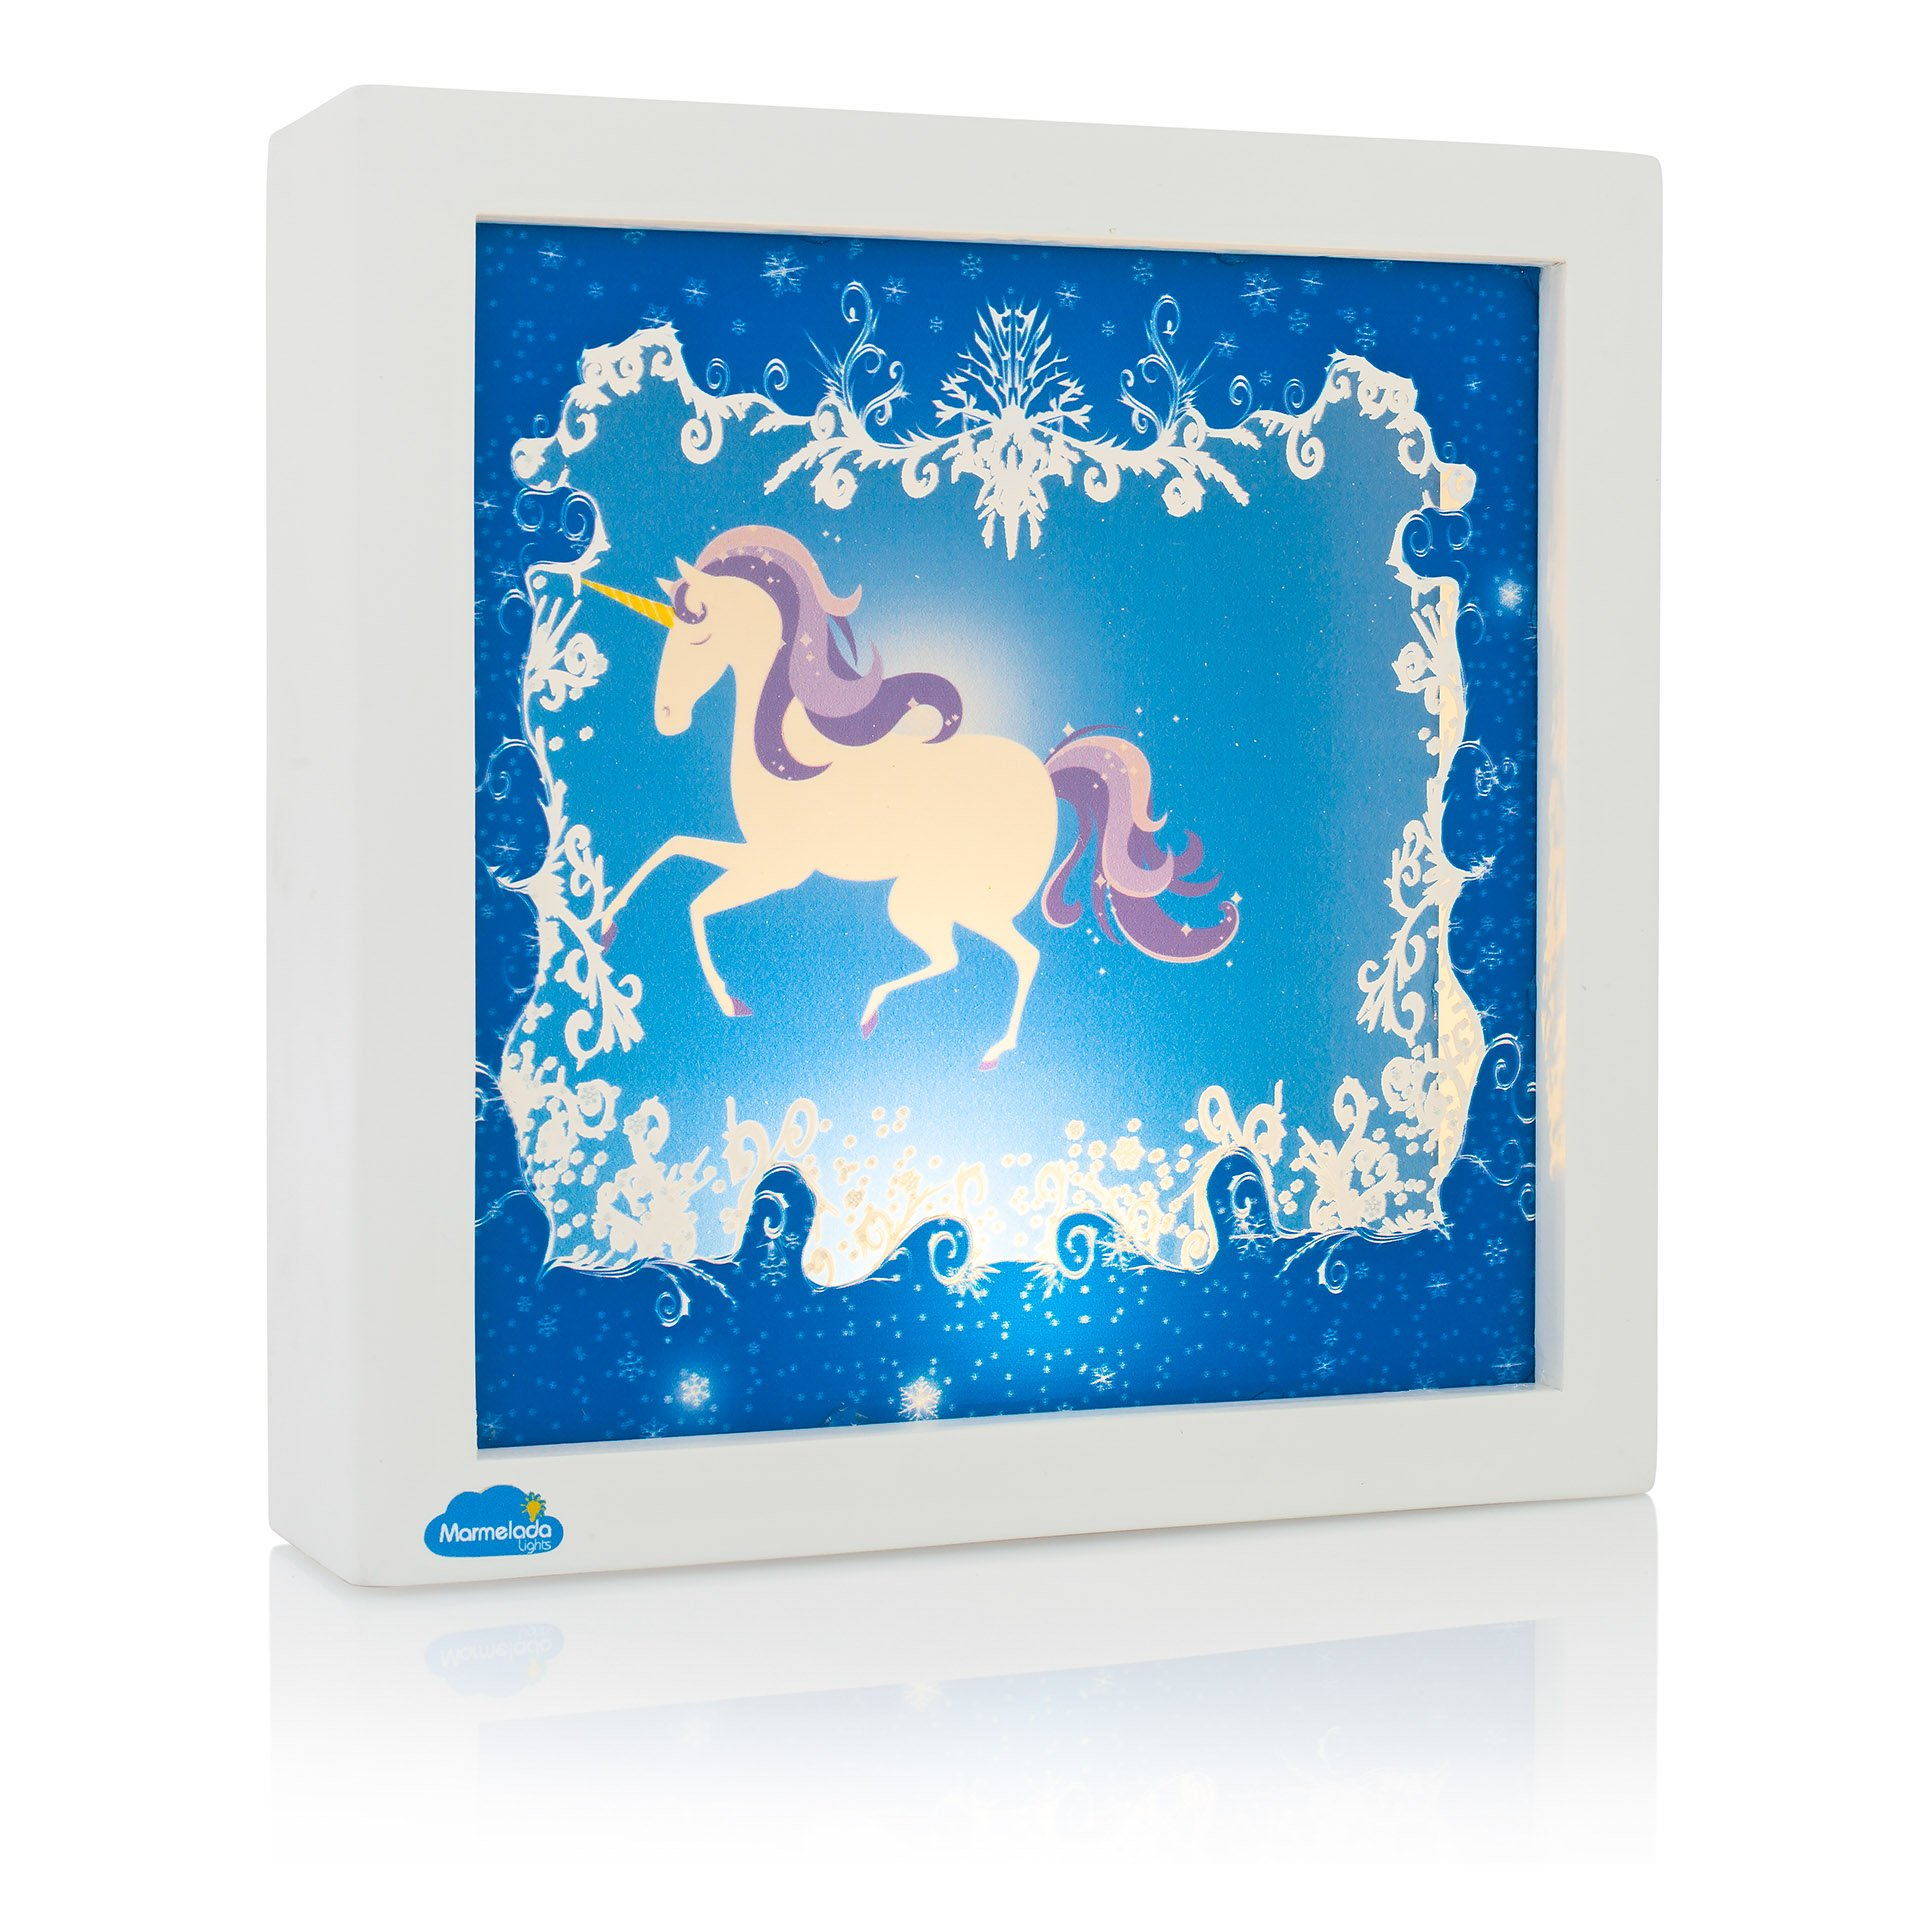 Night Light for Kids, Marmelada Lights, Story in a Frame Series 3D Unicorn legend, LED Bedside Kids, Baby, Children Night Lamp Bookshelf, Tabletop, or Wall Hanging, Battery operated 2 months runtime.